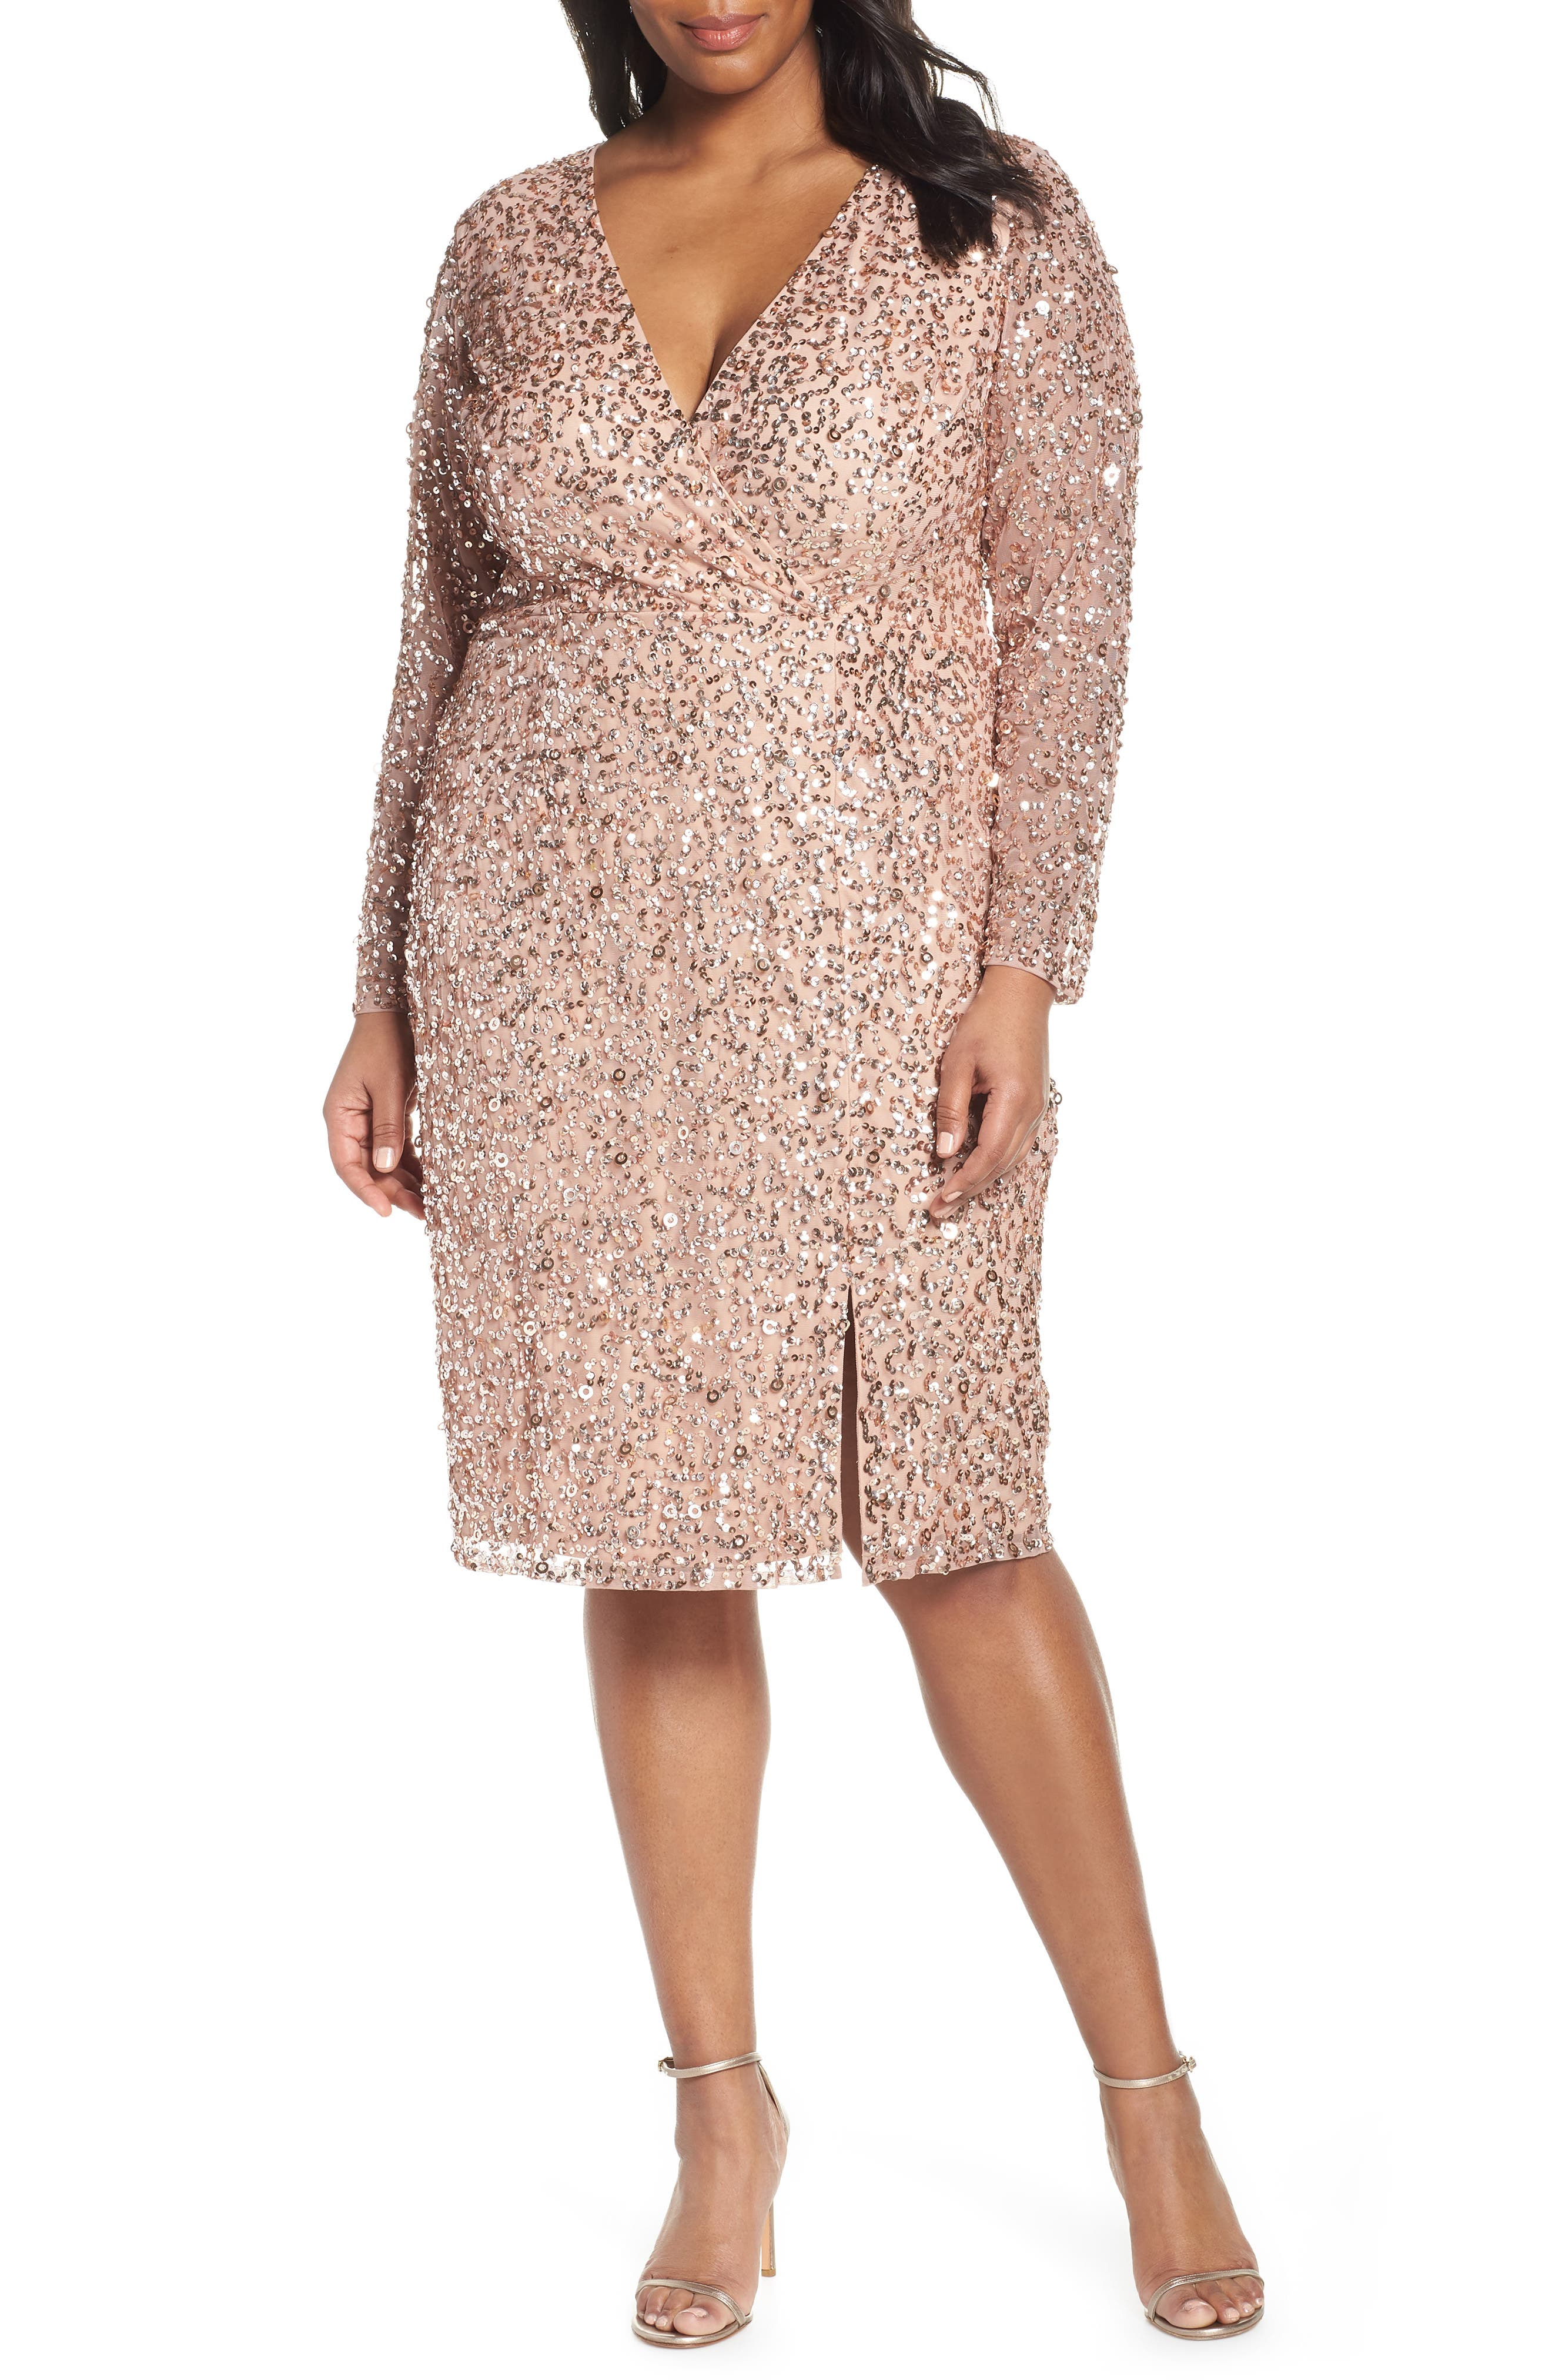 ADRIANNA PAPELL Beaded Mesh Cocktail Dress, Main, color, ROSE GOLD